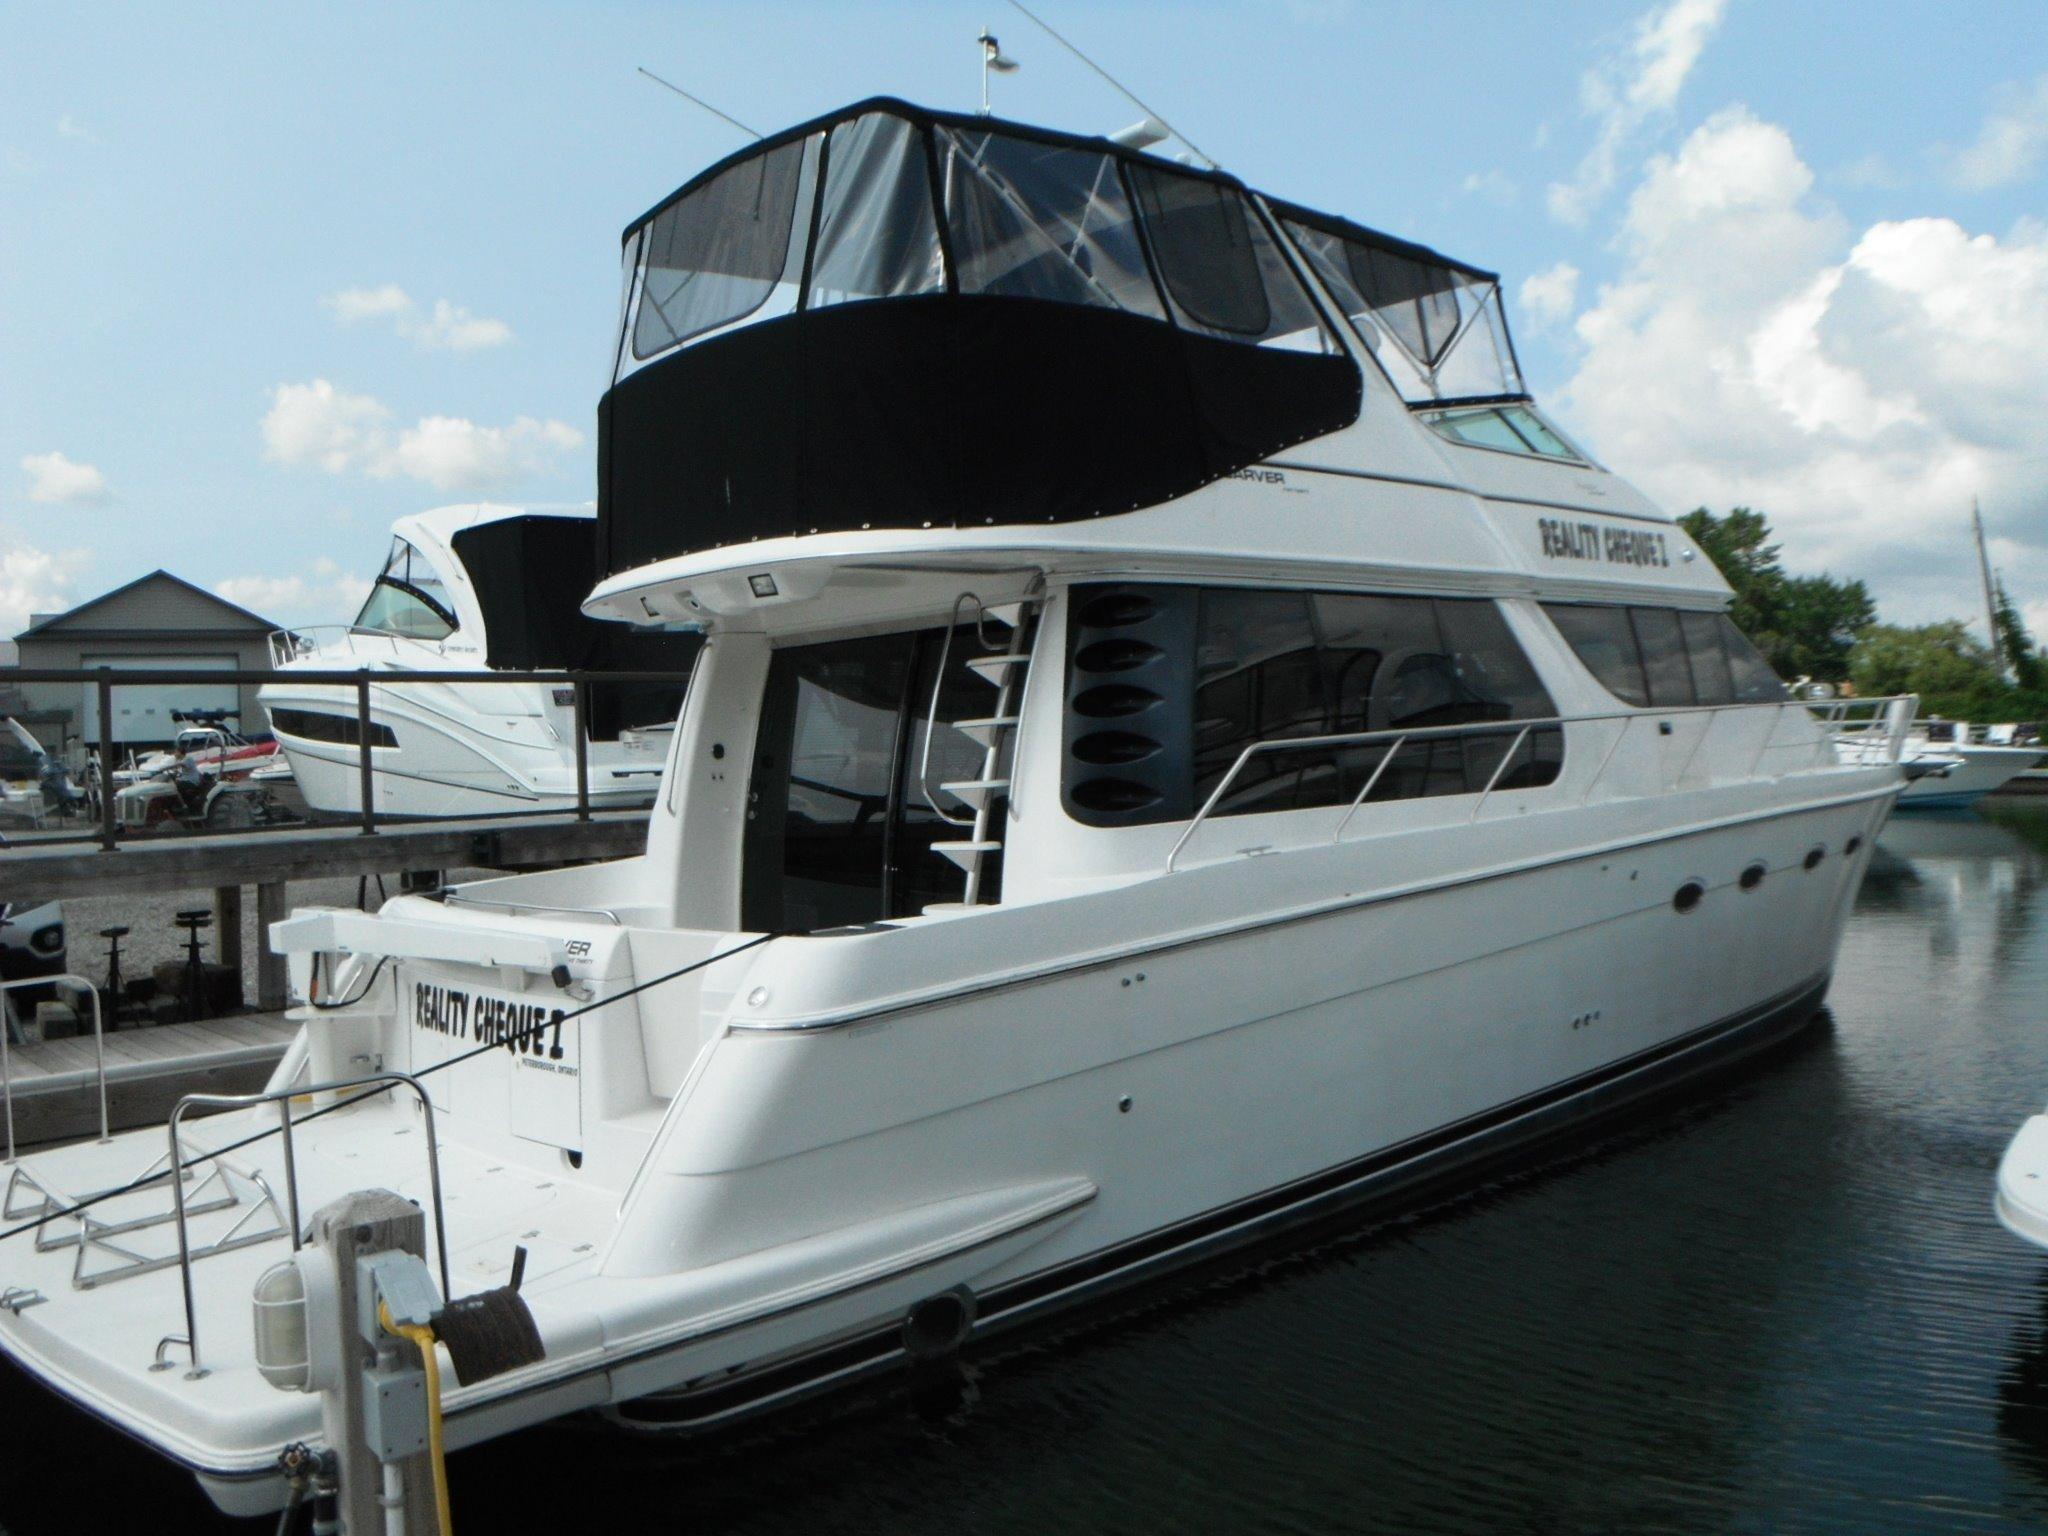 2000 Carver 530 Voyager Pilothouse Power Boat For Sale - www.yachtworld.com